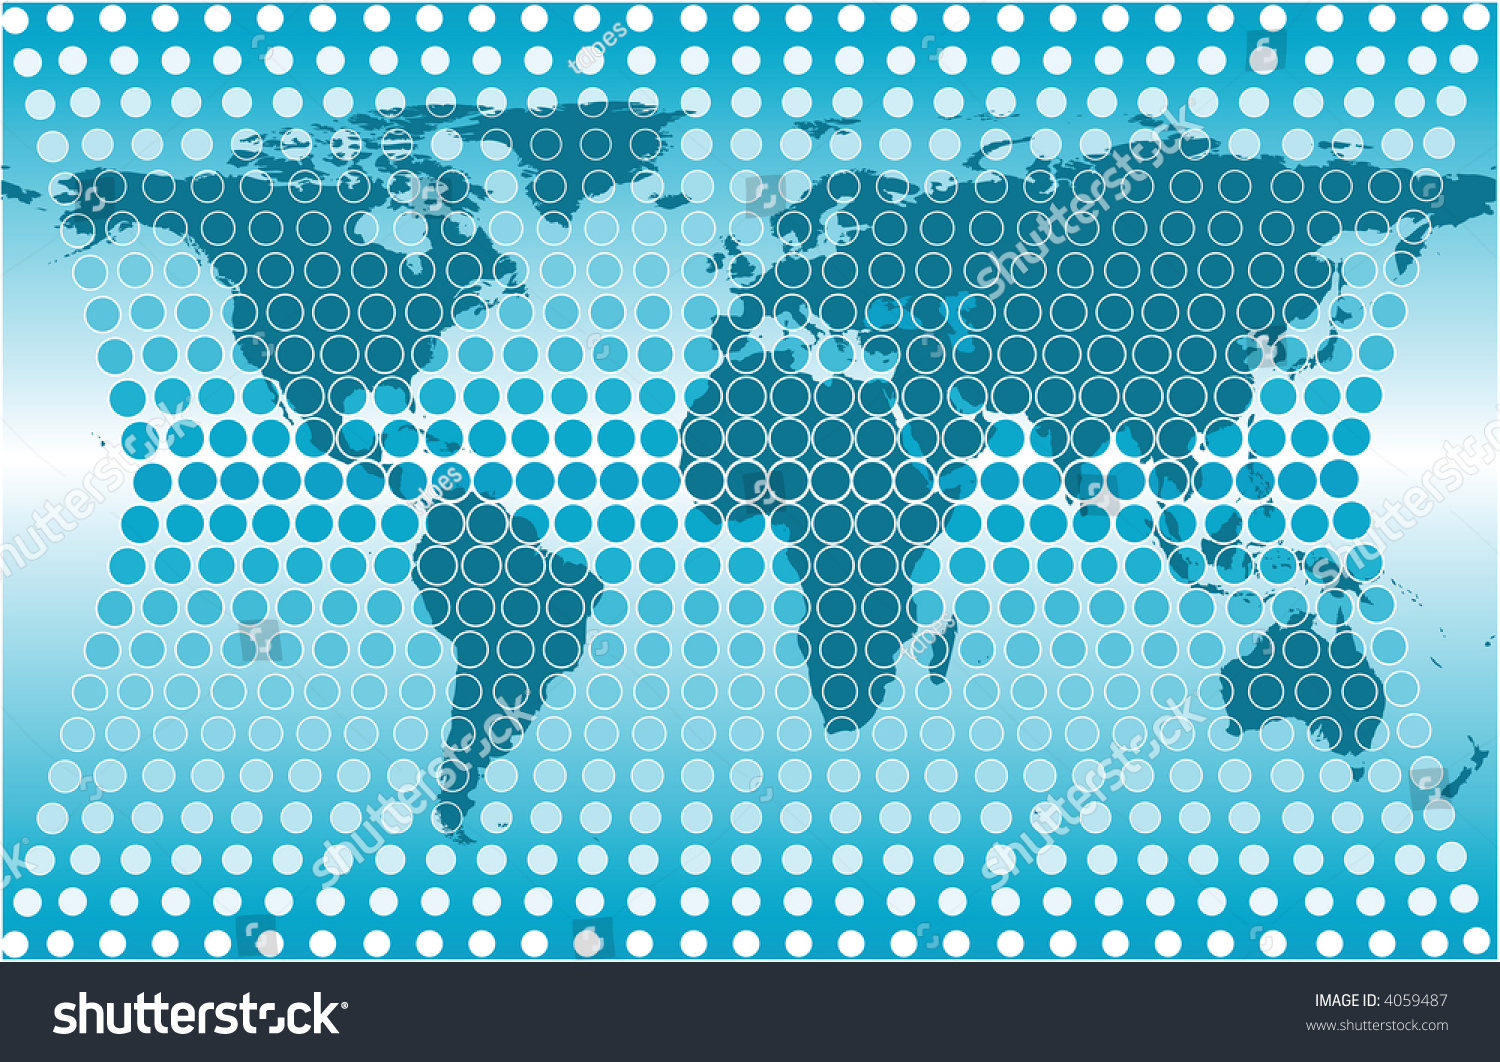 Vector illustration abstract world map grid stock vector 4059487 vector illustration abstract world map grid stock vector 4059487 shutterstock gumiabroncs Image collections